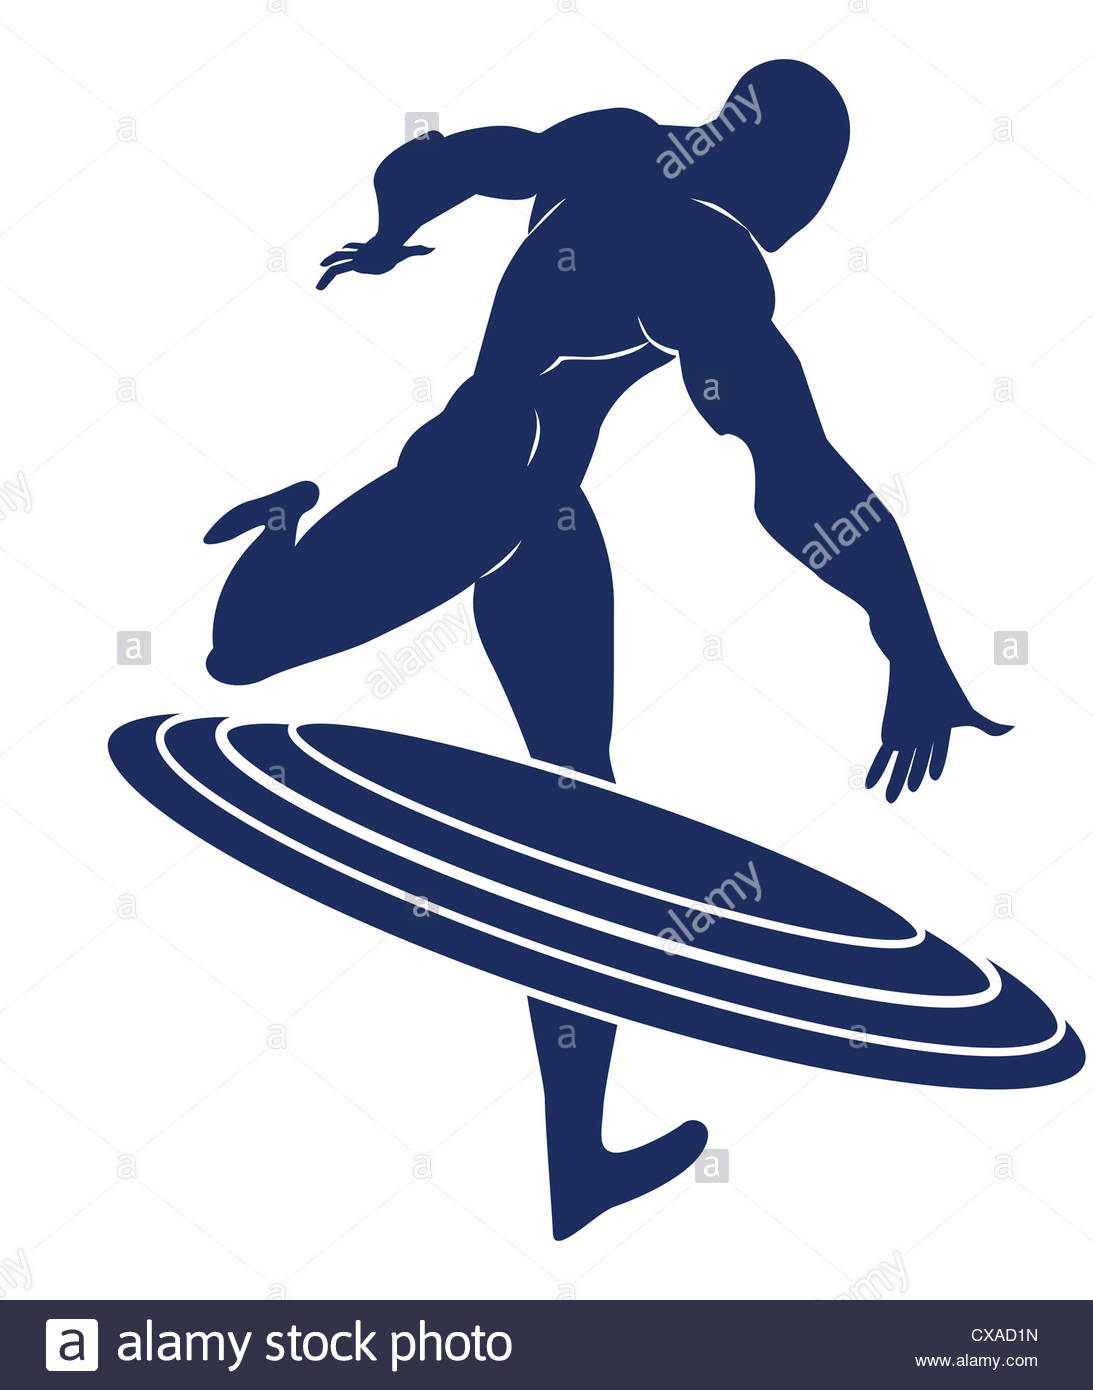 1093x1390 Captain America, Blue Silhouette Of A Man, Throwing A Round Shield